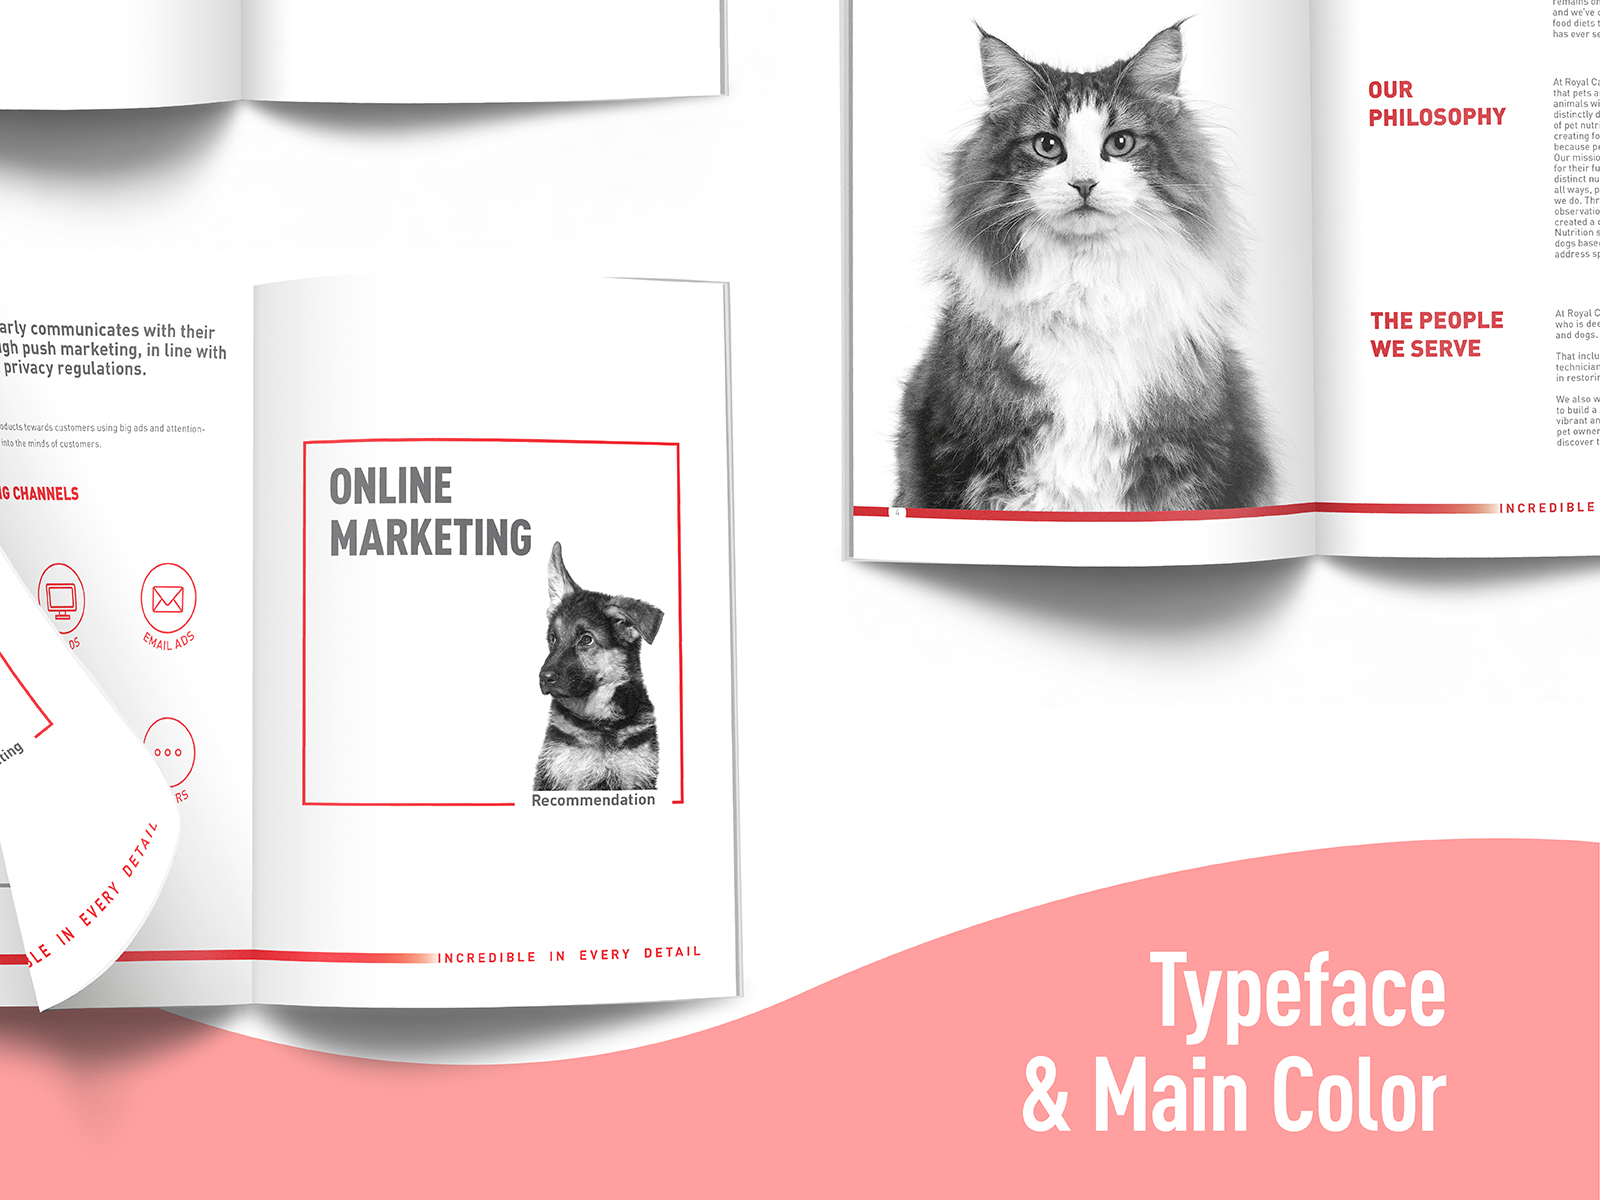 Royal Canin digital CI extension booklet inner pages design showing online marketing and their brand philosophy